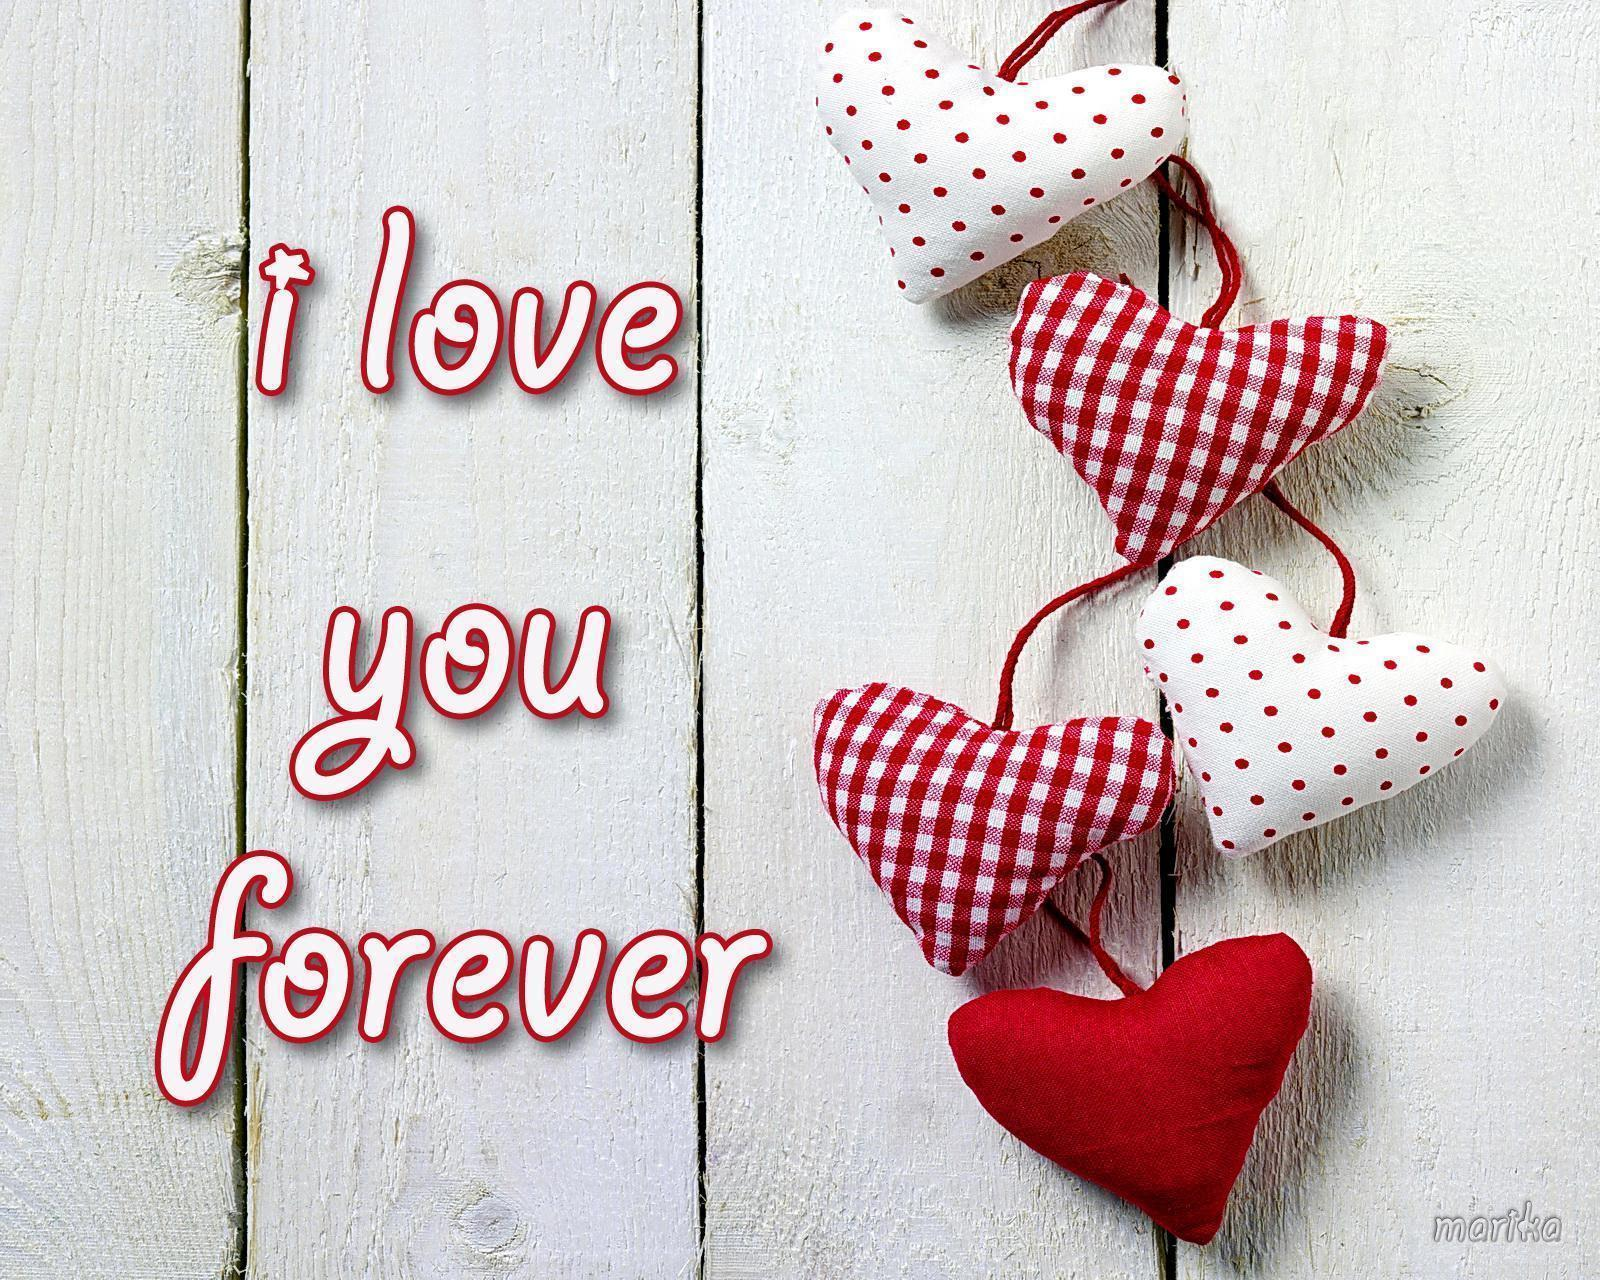 Wallpaper Love U Forever : I Love You Wallpapers - Wallpaper cave